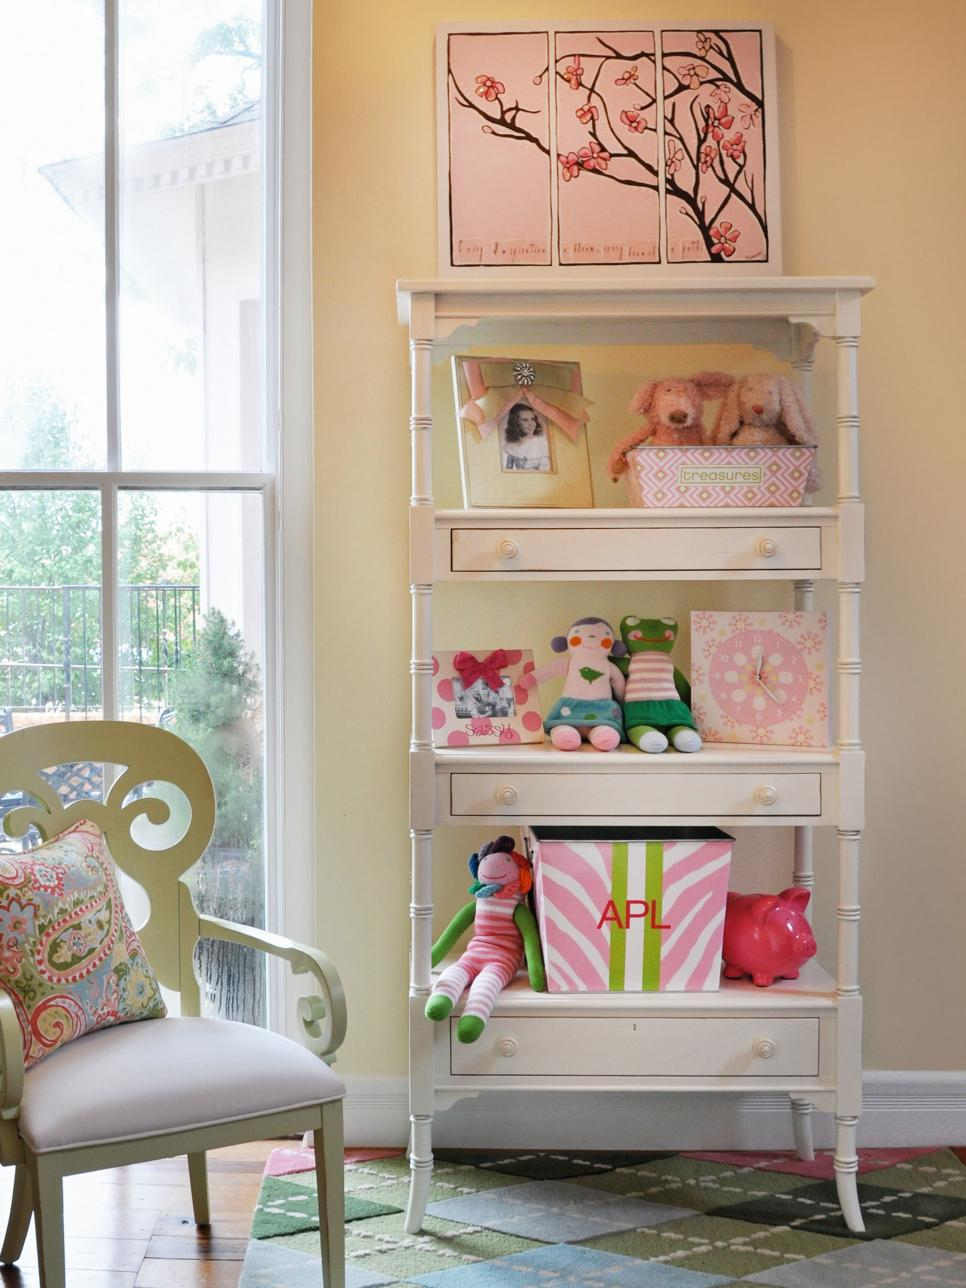 Kids 39 storage and organization ideas that grow hgtv for Bedroom organization ideas